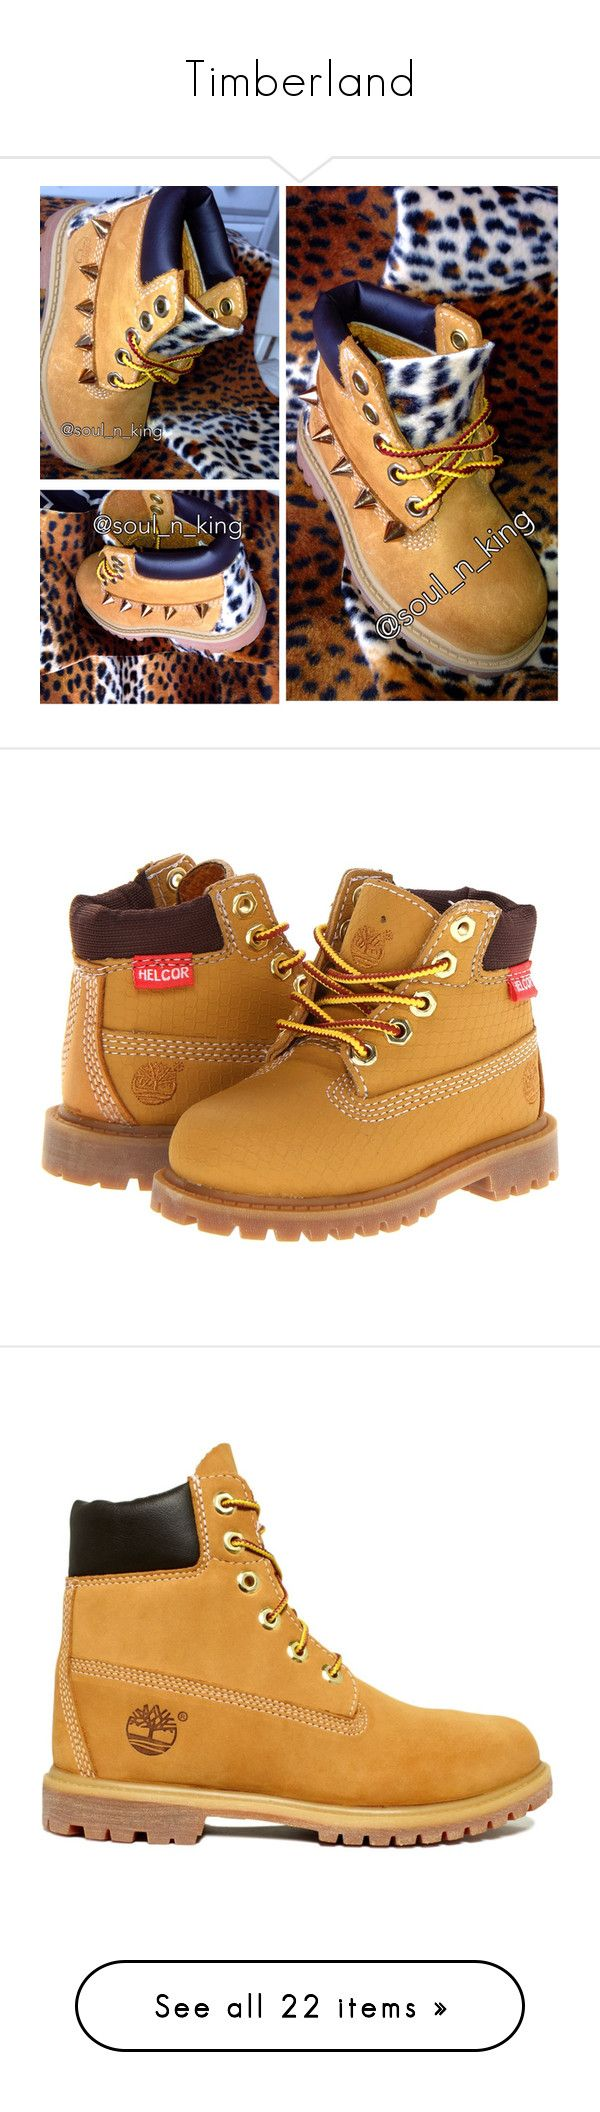 """""""Timberland"""" by nouisxsmiles ❤ liked on Polyvore featuring shoes, boots, ankle booties, timberlands, ankle boots, timberland boots, round toe ankle boots, short boots, round toe booties and short leather boots"""